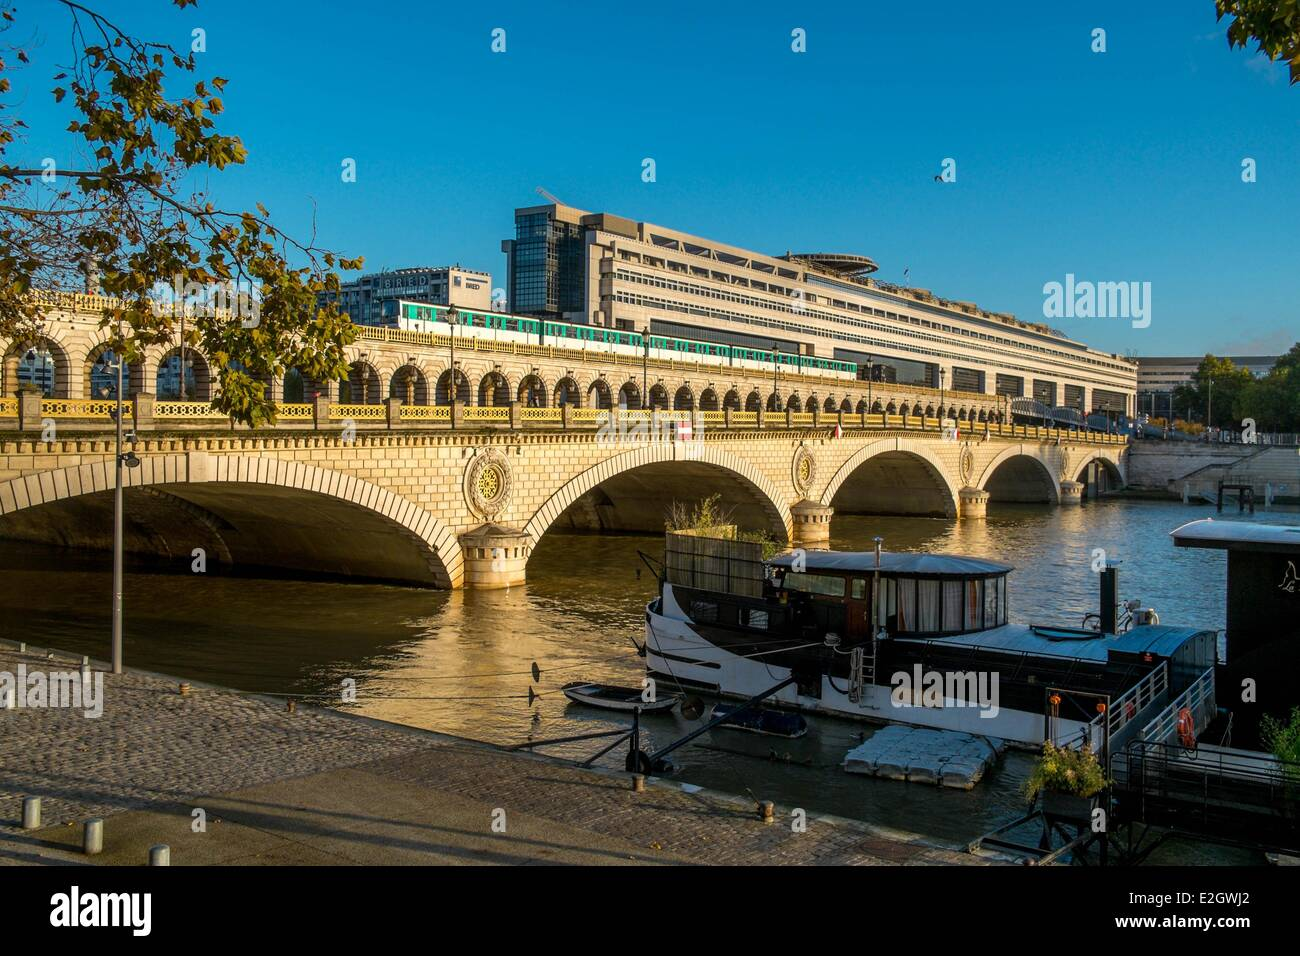 France Paris Pont de Bercy Skytrain and Ministry of Economy and Finance by architects Paul Chemetov and Borja Huidobro - Stock Image